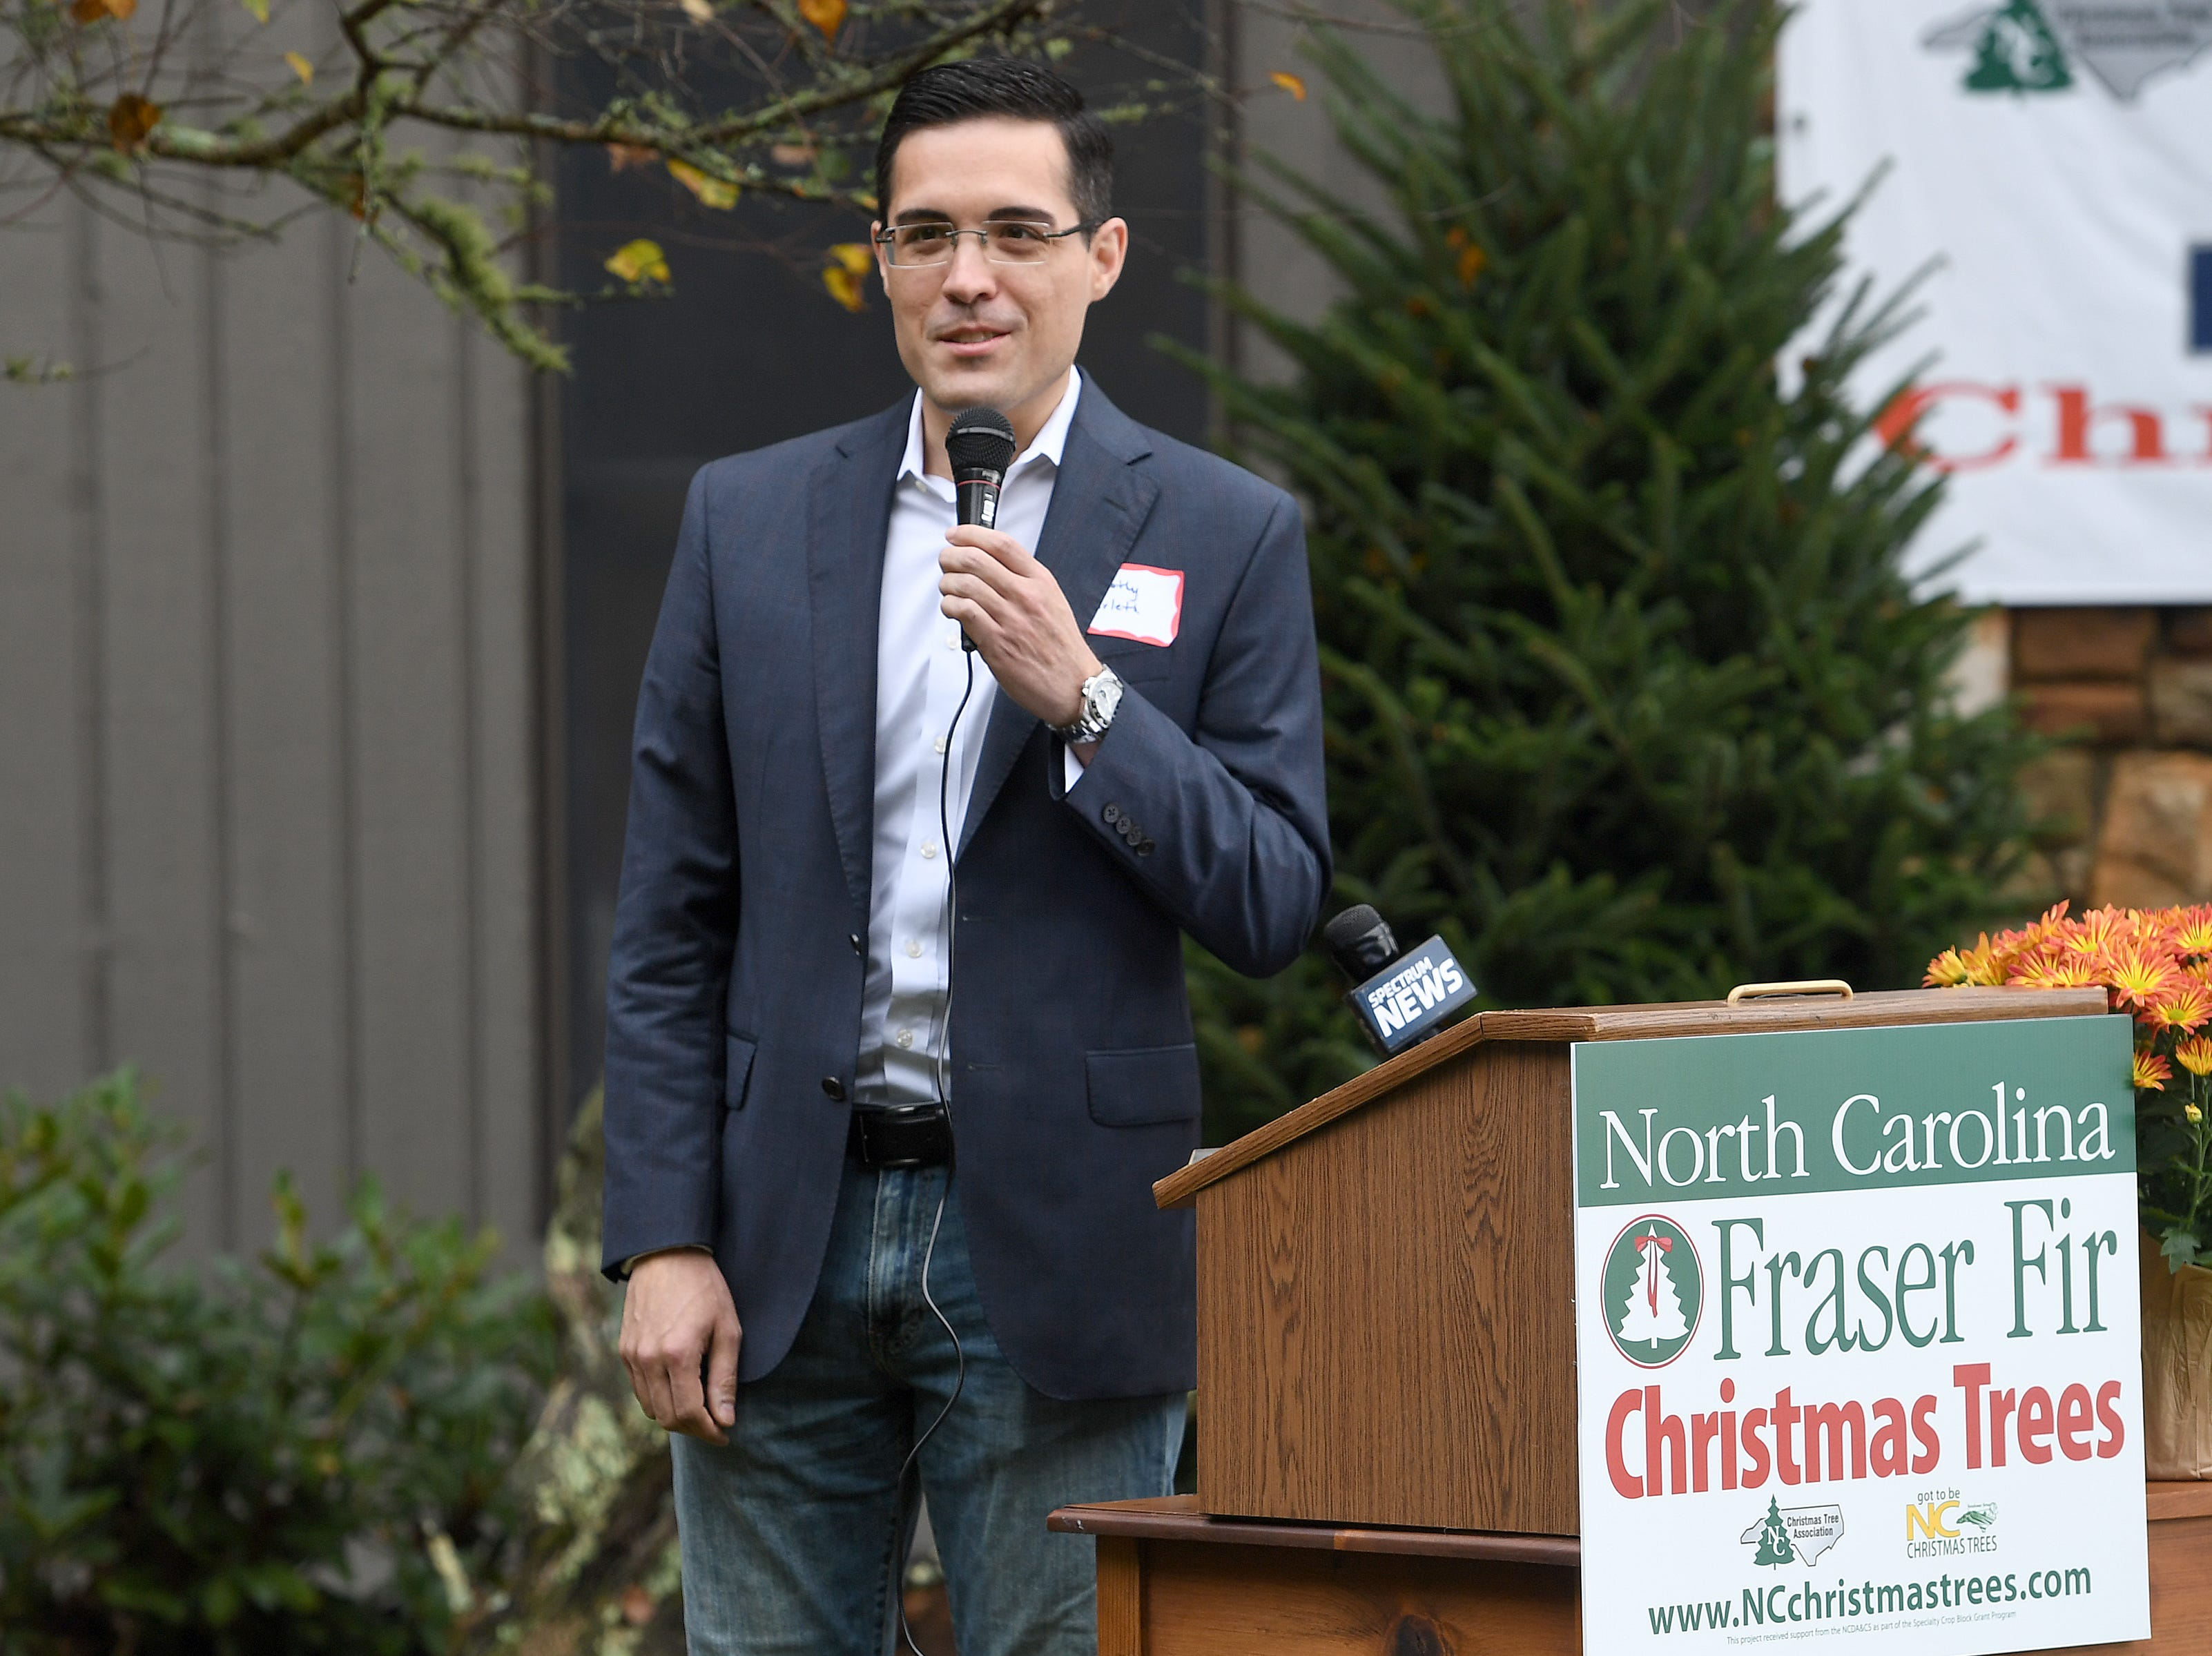 White House chief usher Timothy Harleth addresses the crowd during an event at Mountain Top Fraser Fir in Newland on Sept. 24, 2018. Larry Smith, owner of the farm, was named the Grand Champion in the National Christmas Tree Association's Christmas tree contest and with the title comes the honor of providing a tree to the White House to be displayed in the Blue Room during the Christmas season.